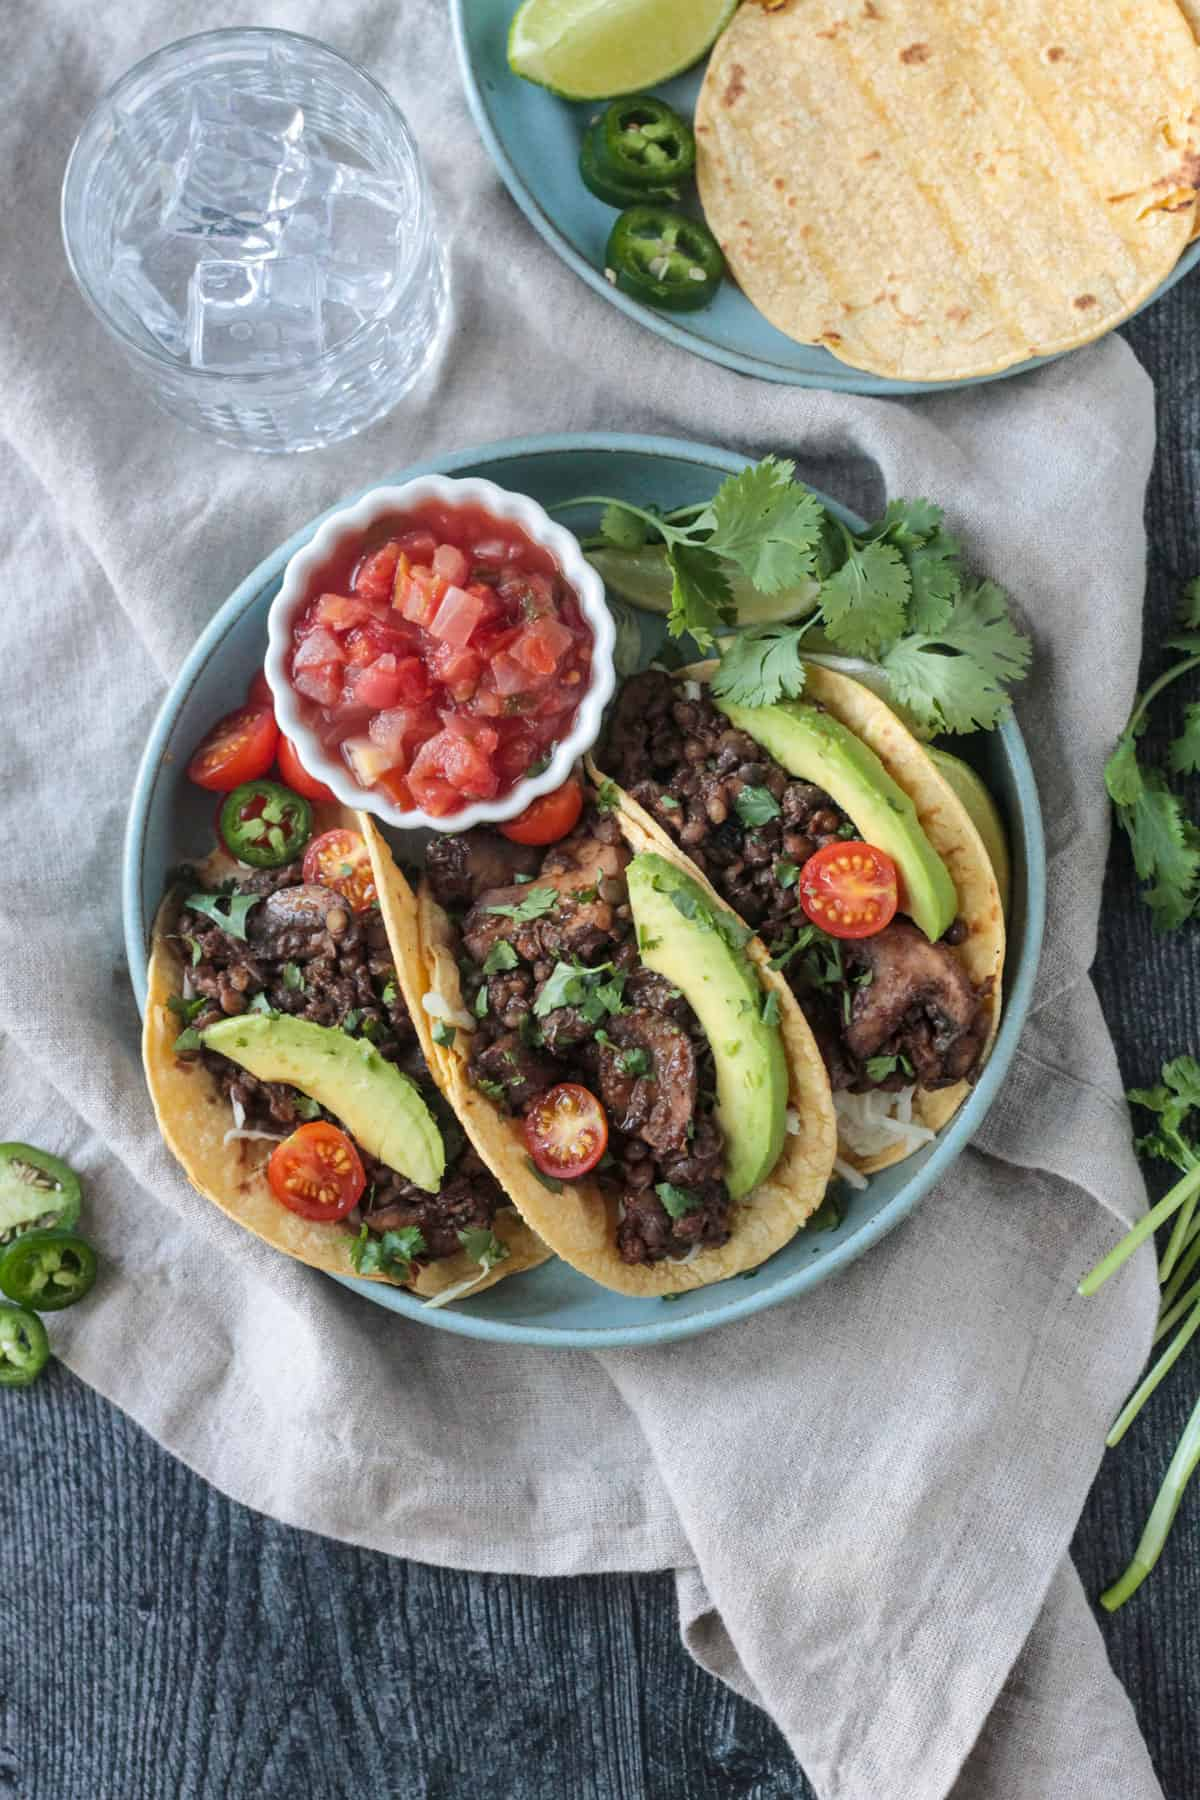 Three vegan lentil tacos with mushrooms and toppings next to a small bowl of salsa.